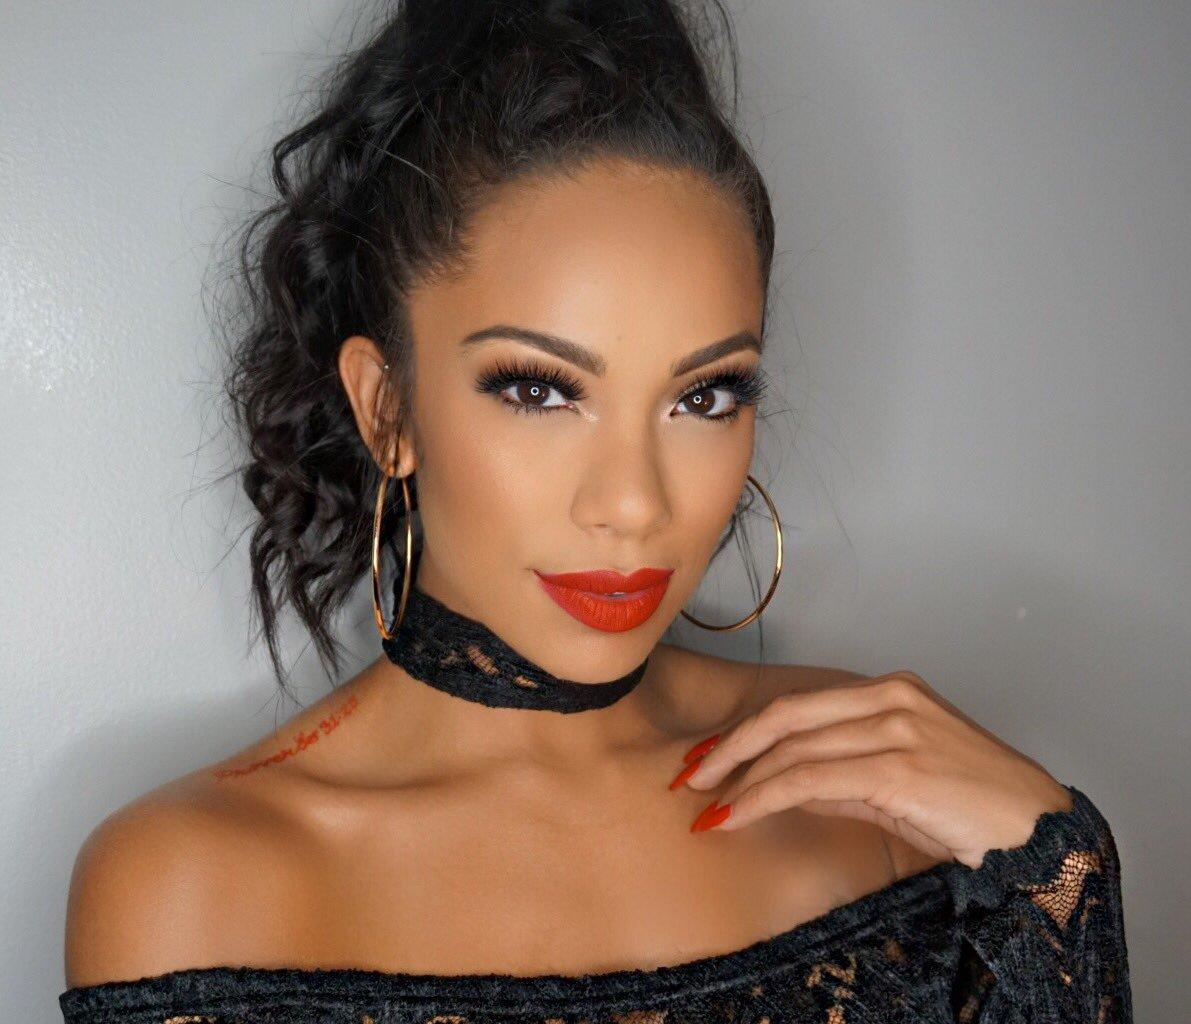 Erica Mena's Recent Photo Has Fans Saying She Looks Like Sade - Other People Notice Something Else